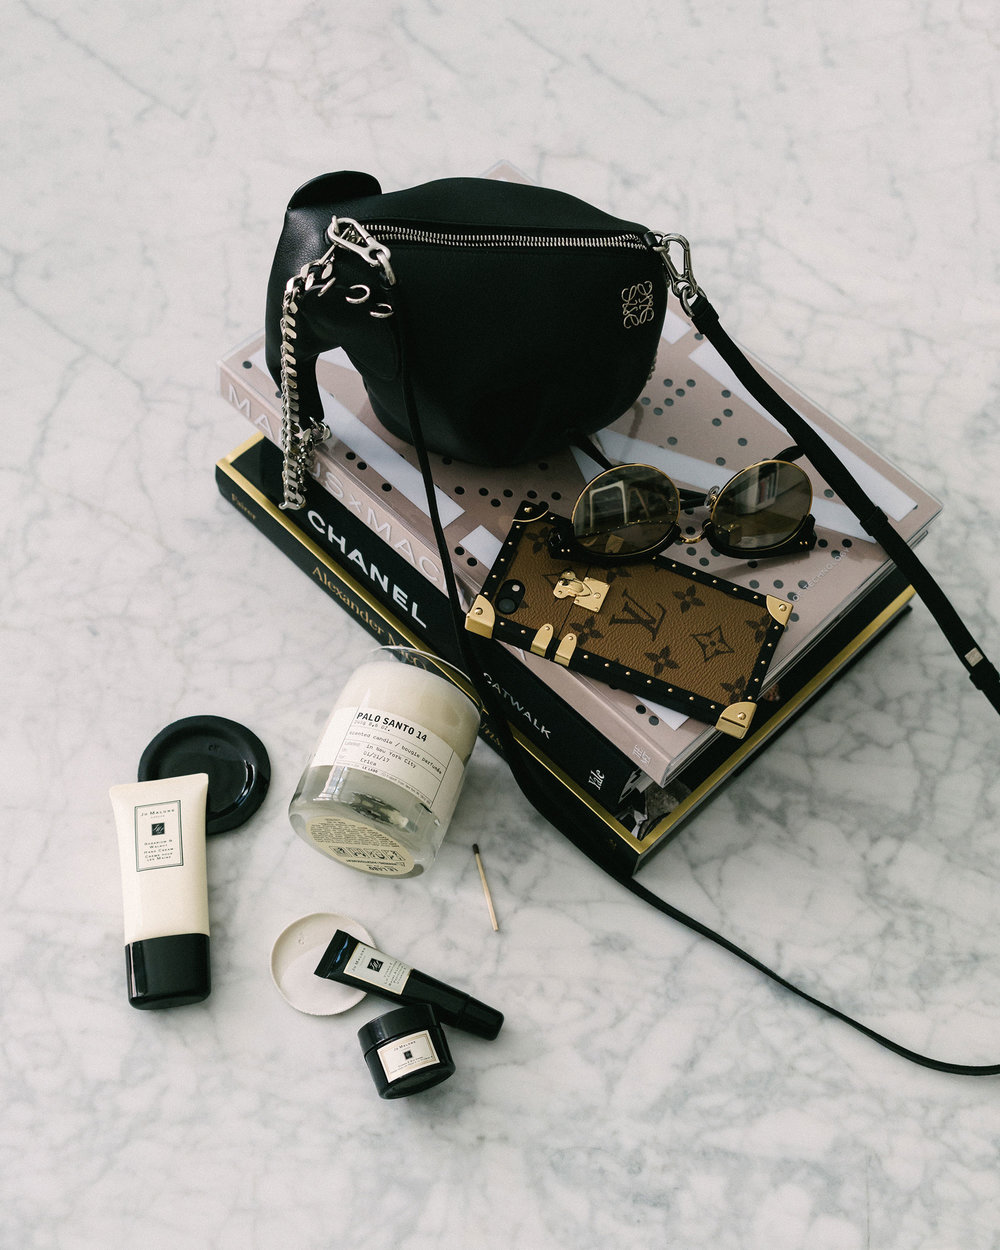 Loewe Bag, Louis Vuitton iPhone Case, Le Labo Candle, Jo Malone Hand Cream, Eye Cream, Lip Balm